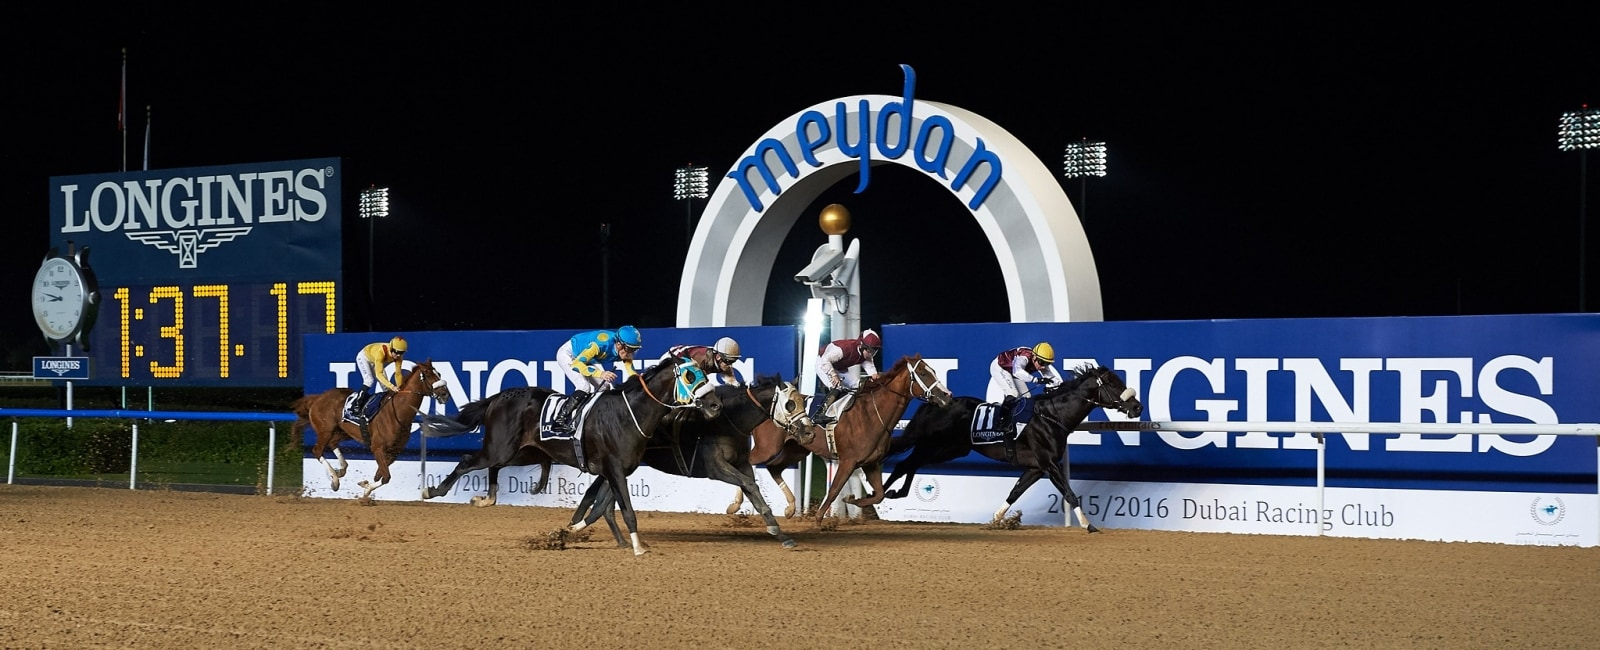 Dubai World Cup Carnival Opening night;Races Presented by Longines;Horse Racing;2016